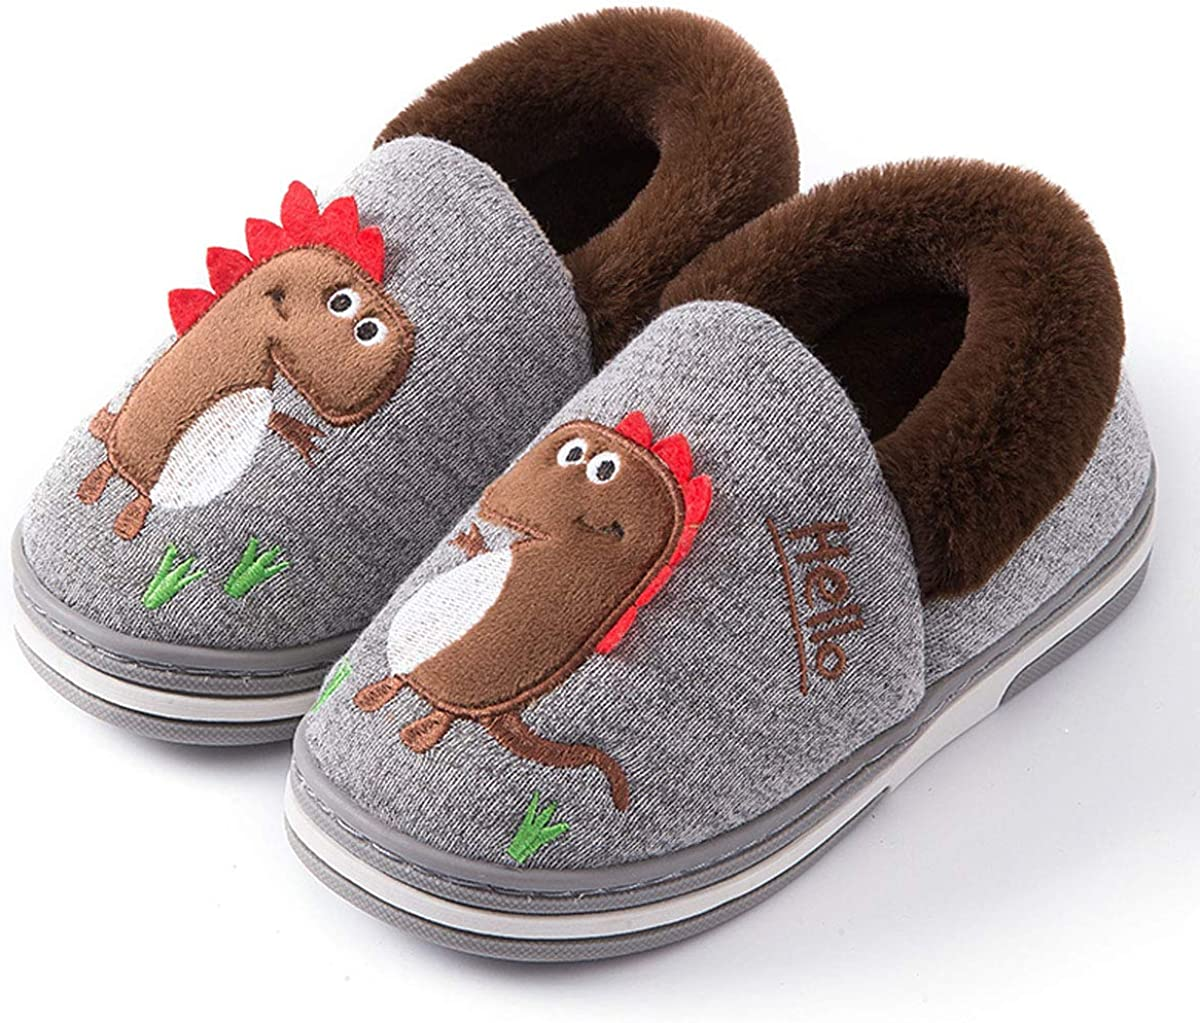 Kitulandy Girls Boys Slippers Warm Kids Max 45% OFF House Cozy Winter 2021new shipping free Cotton